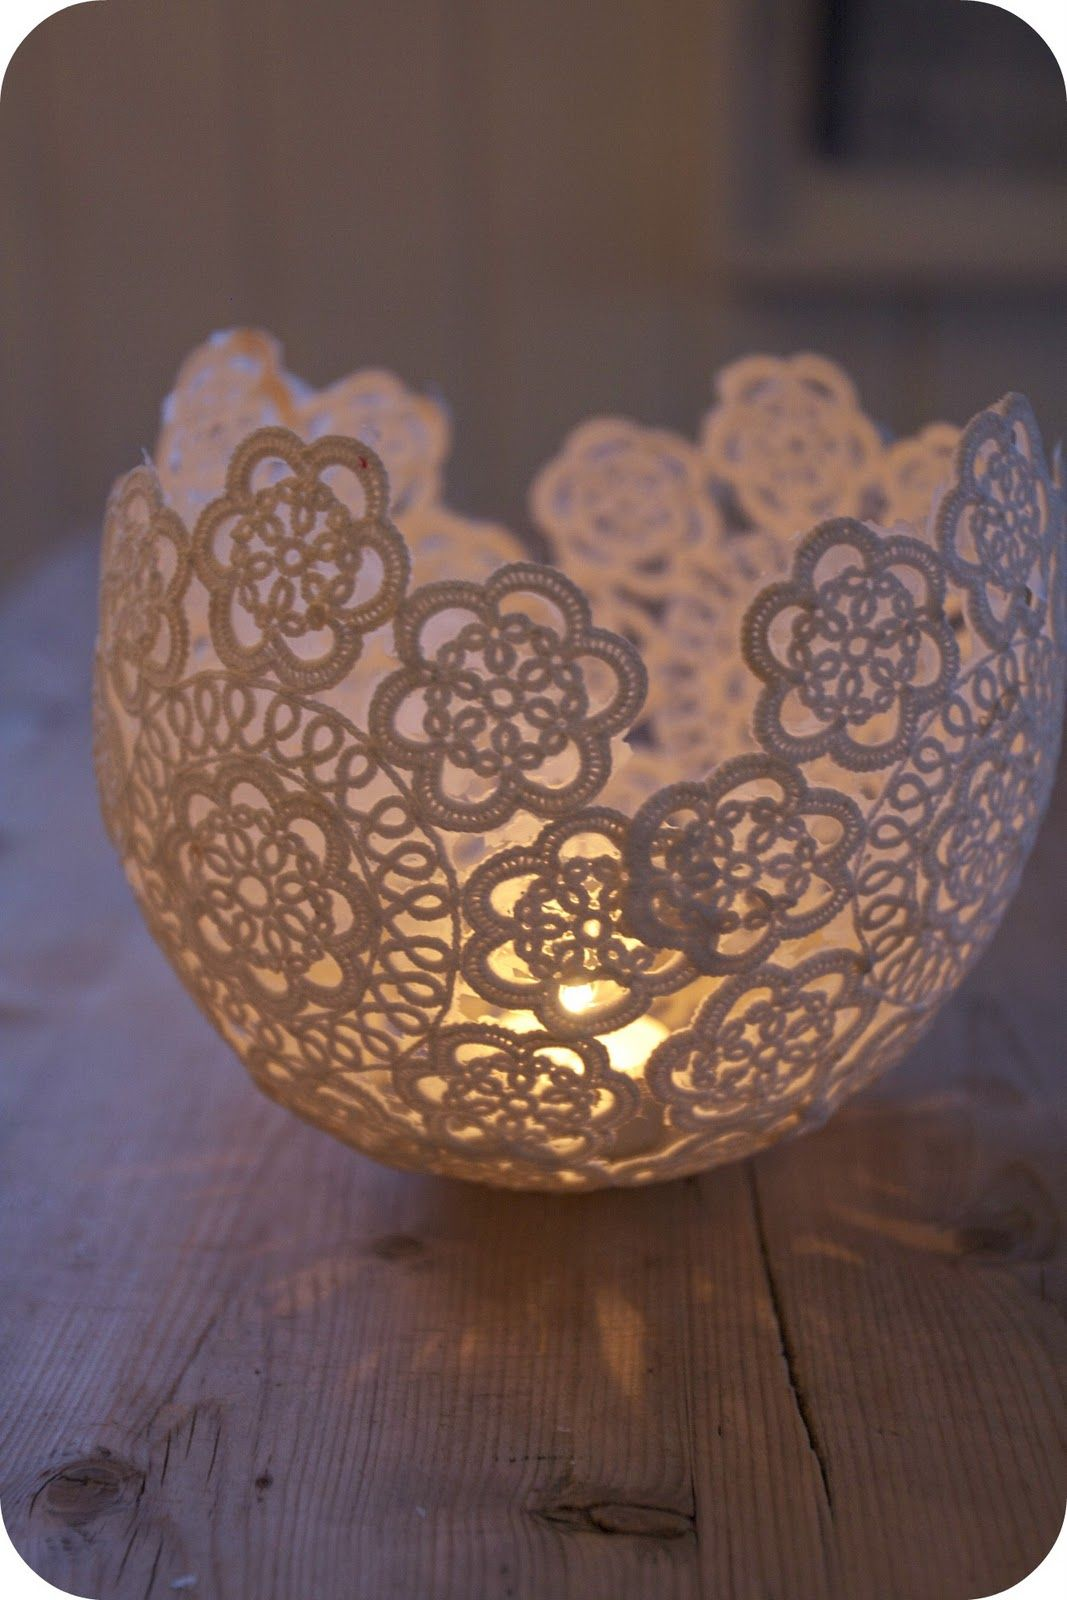 Uncategorized String Art Balloons doily candle holders tea light candles dips and teas holders